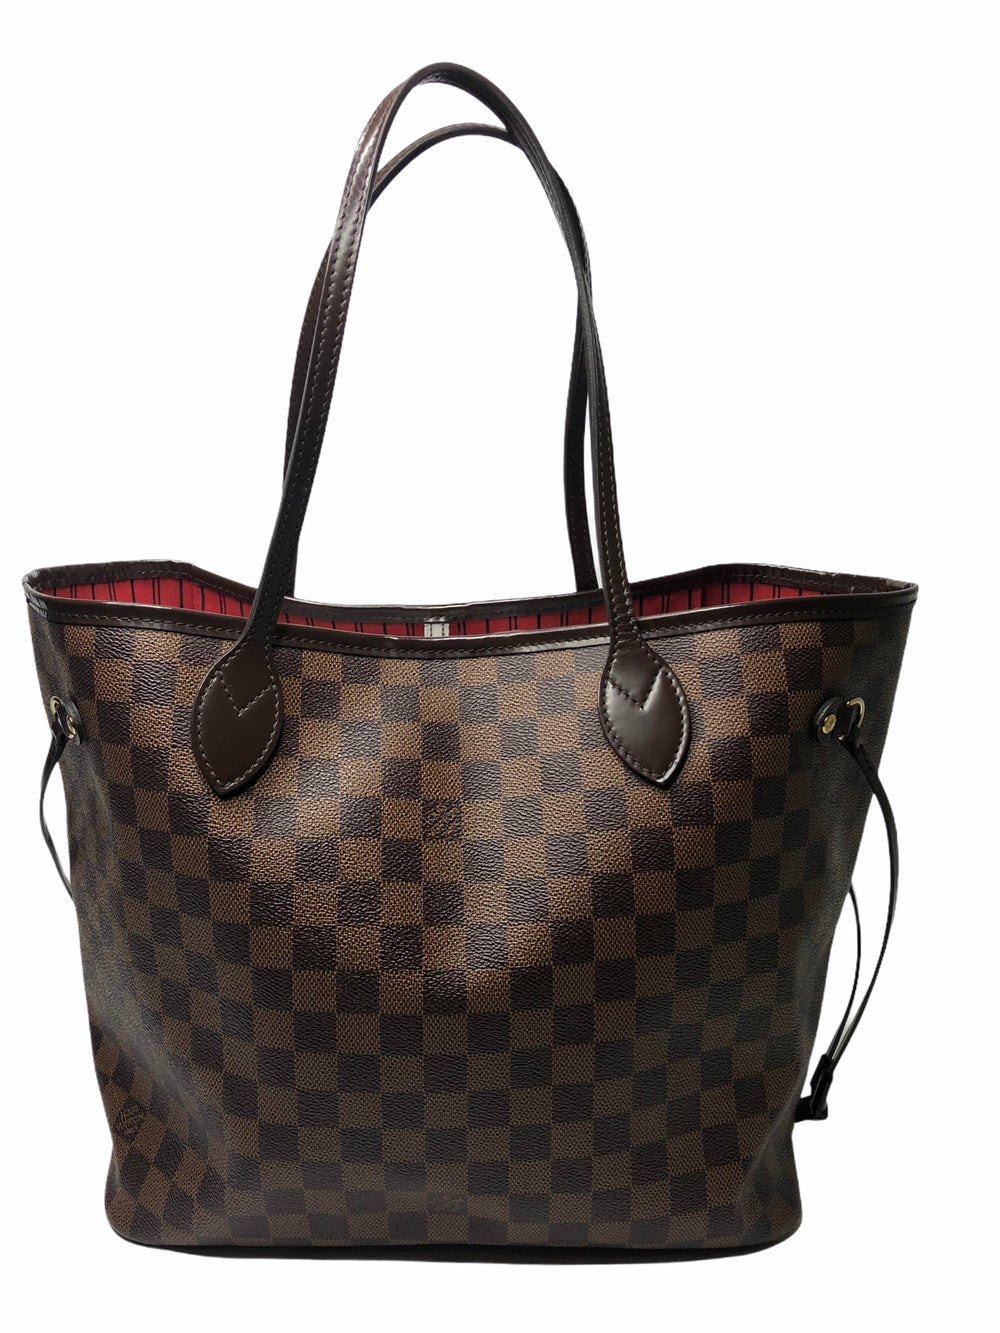 Louis Vuitton Damier Ebene Neverfull MM - As Seen on Instagram 11/11/2020